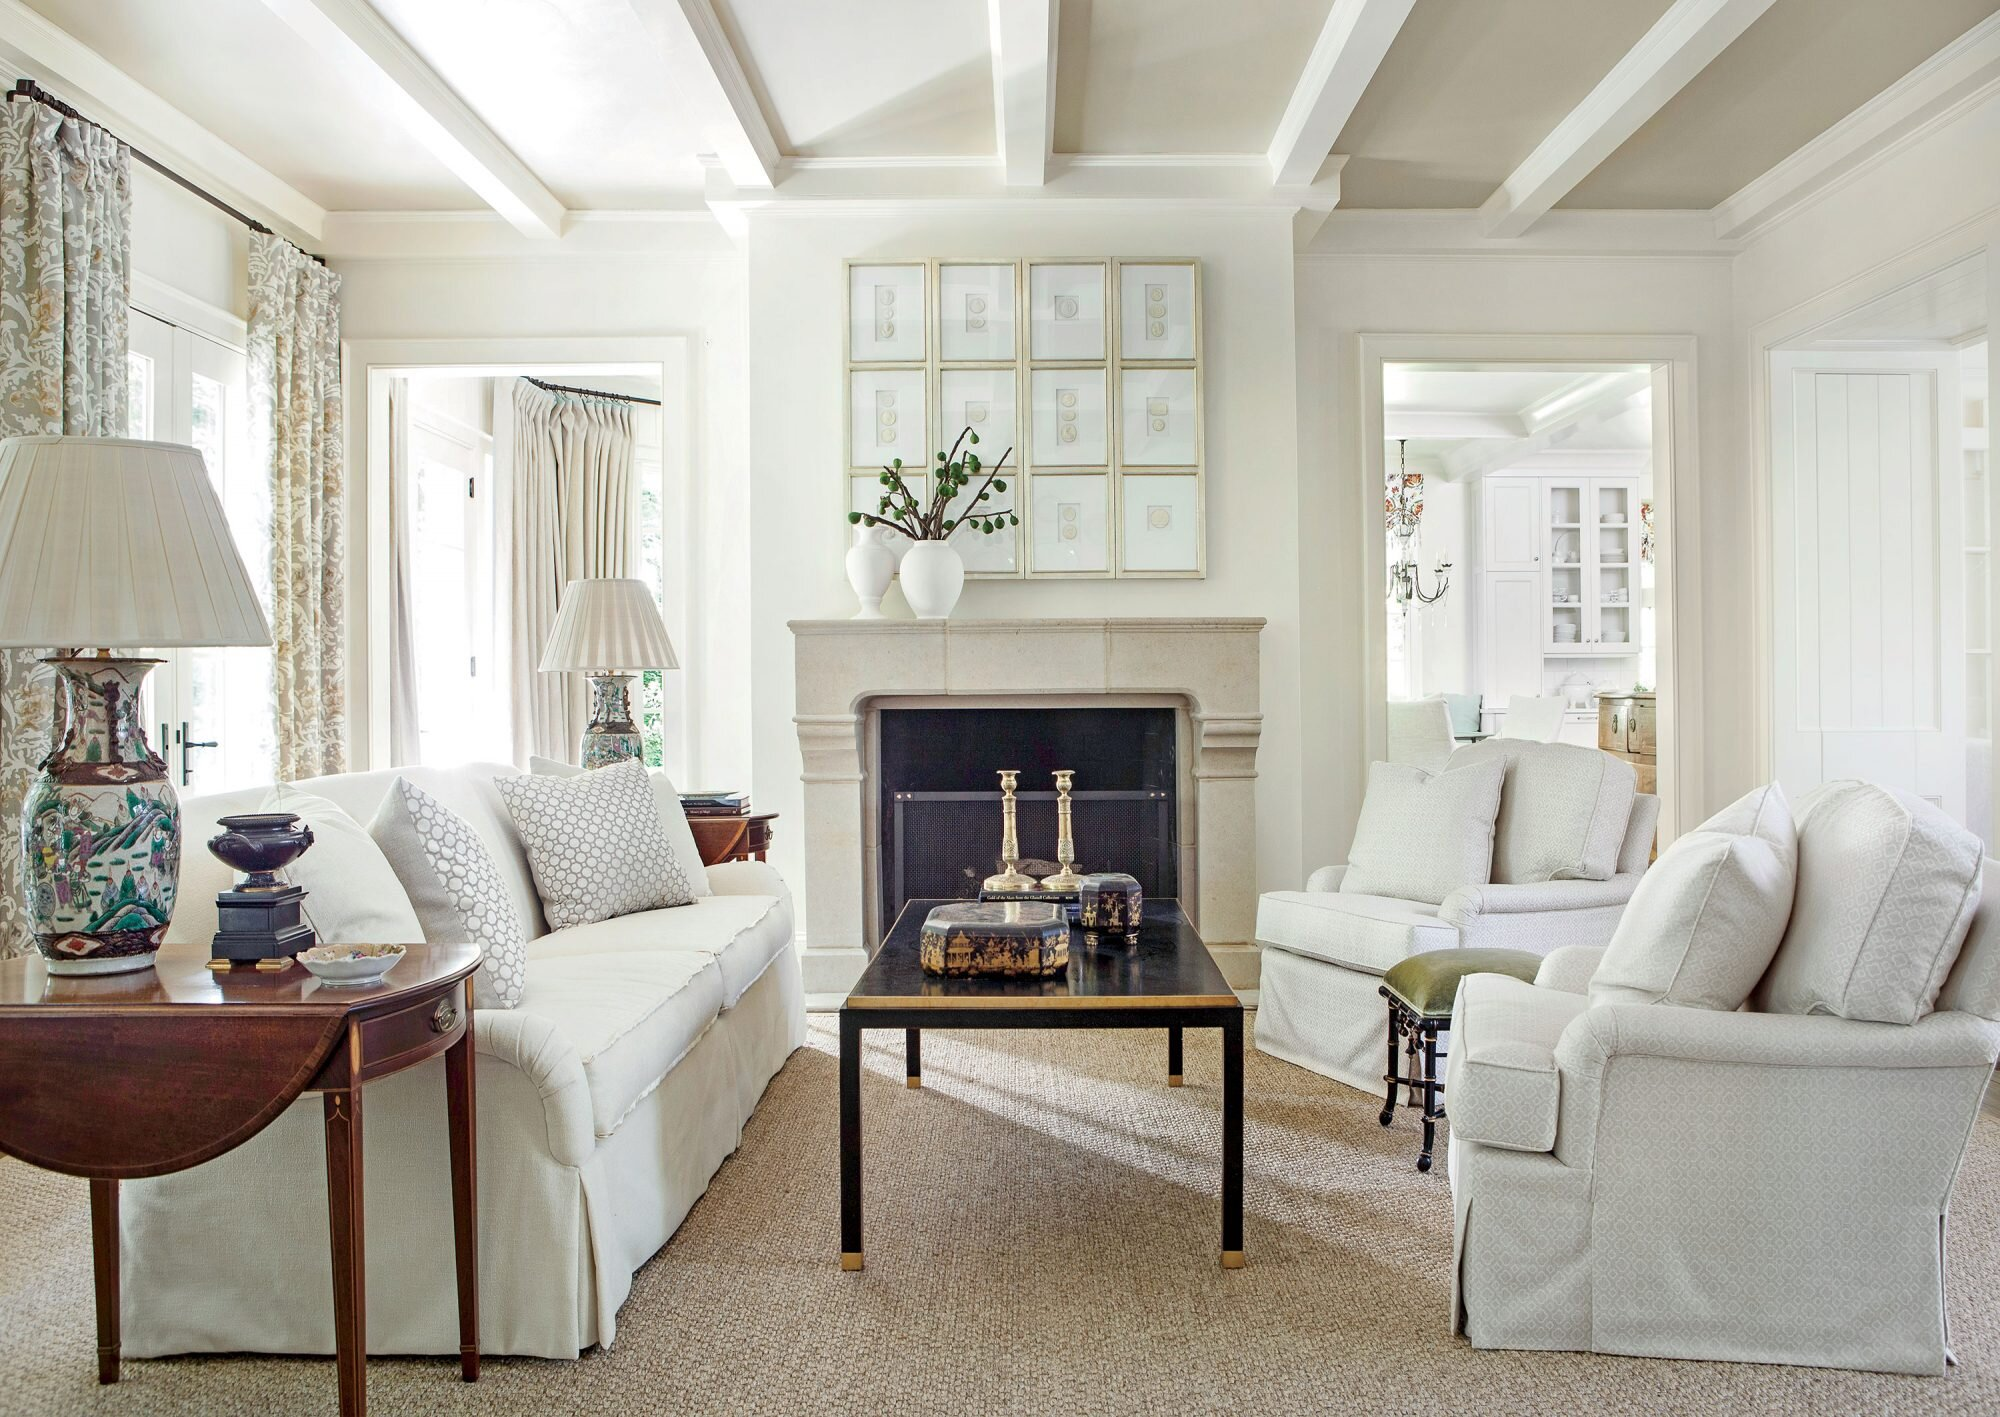 14 Warm White Paint Colors To Cozy Up